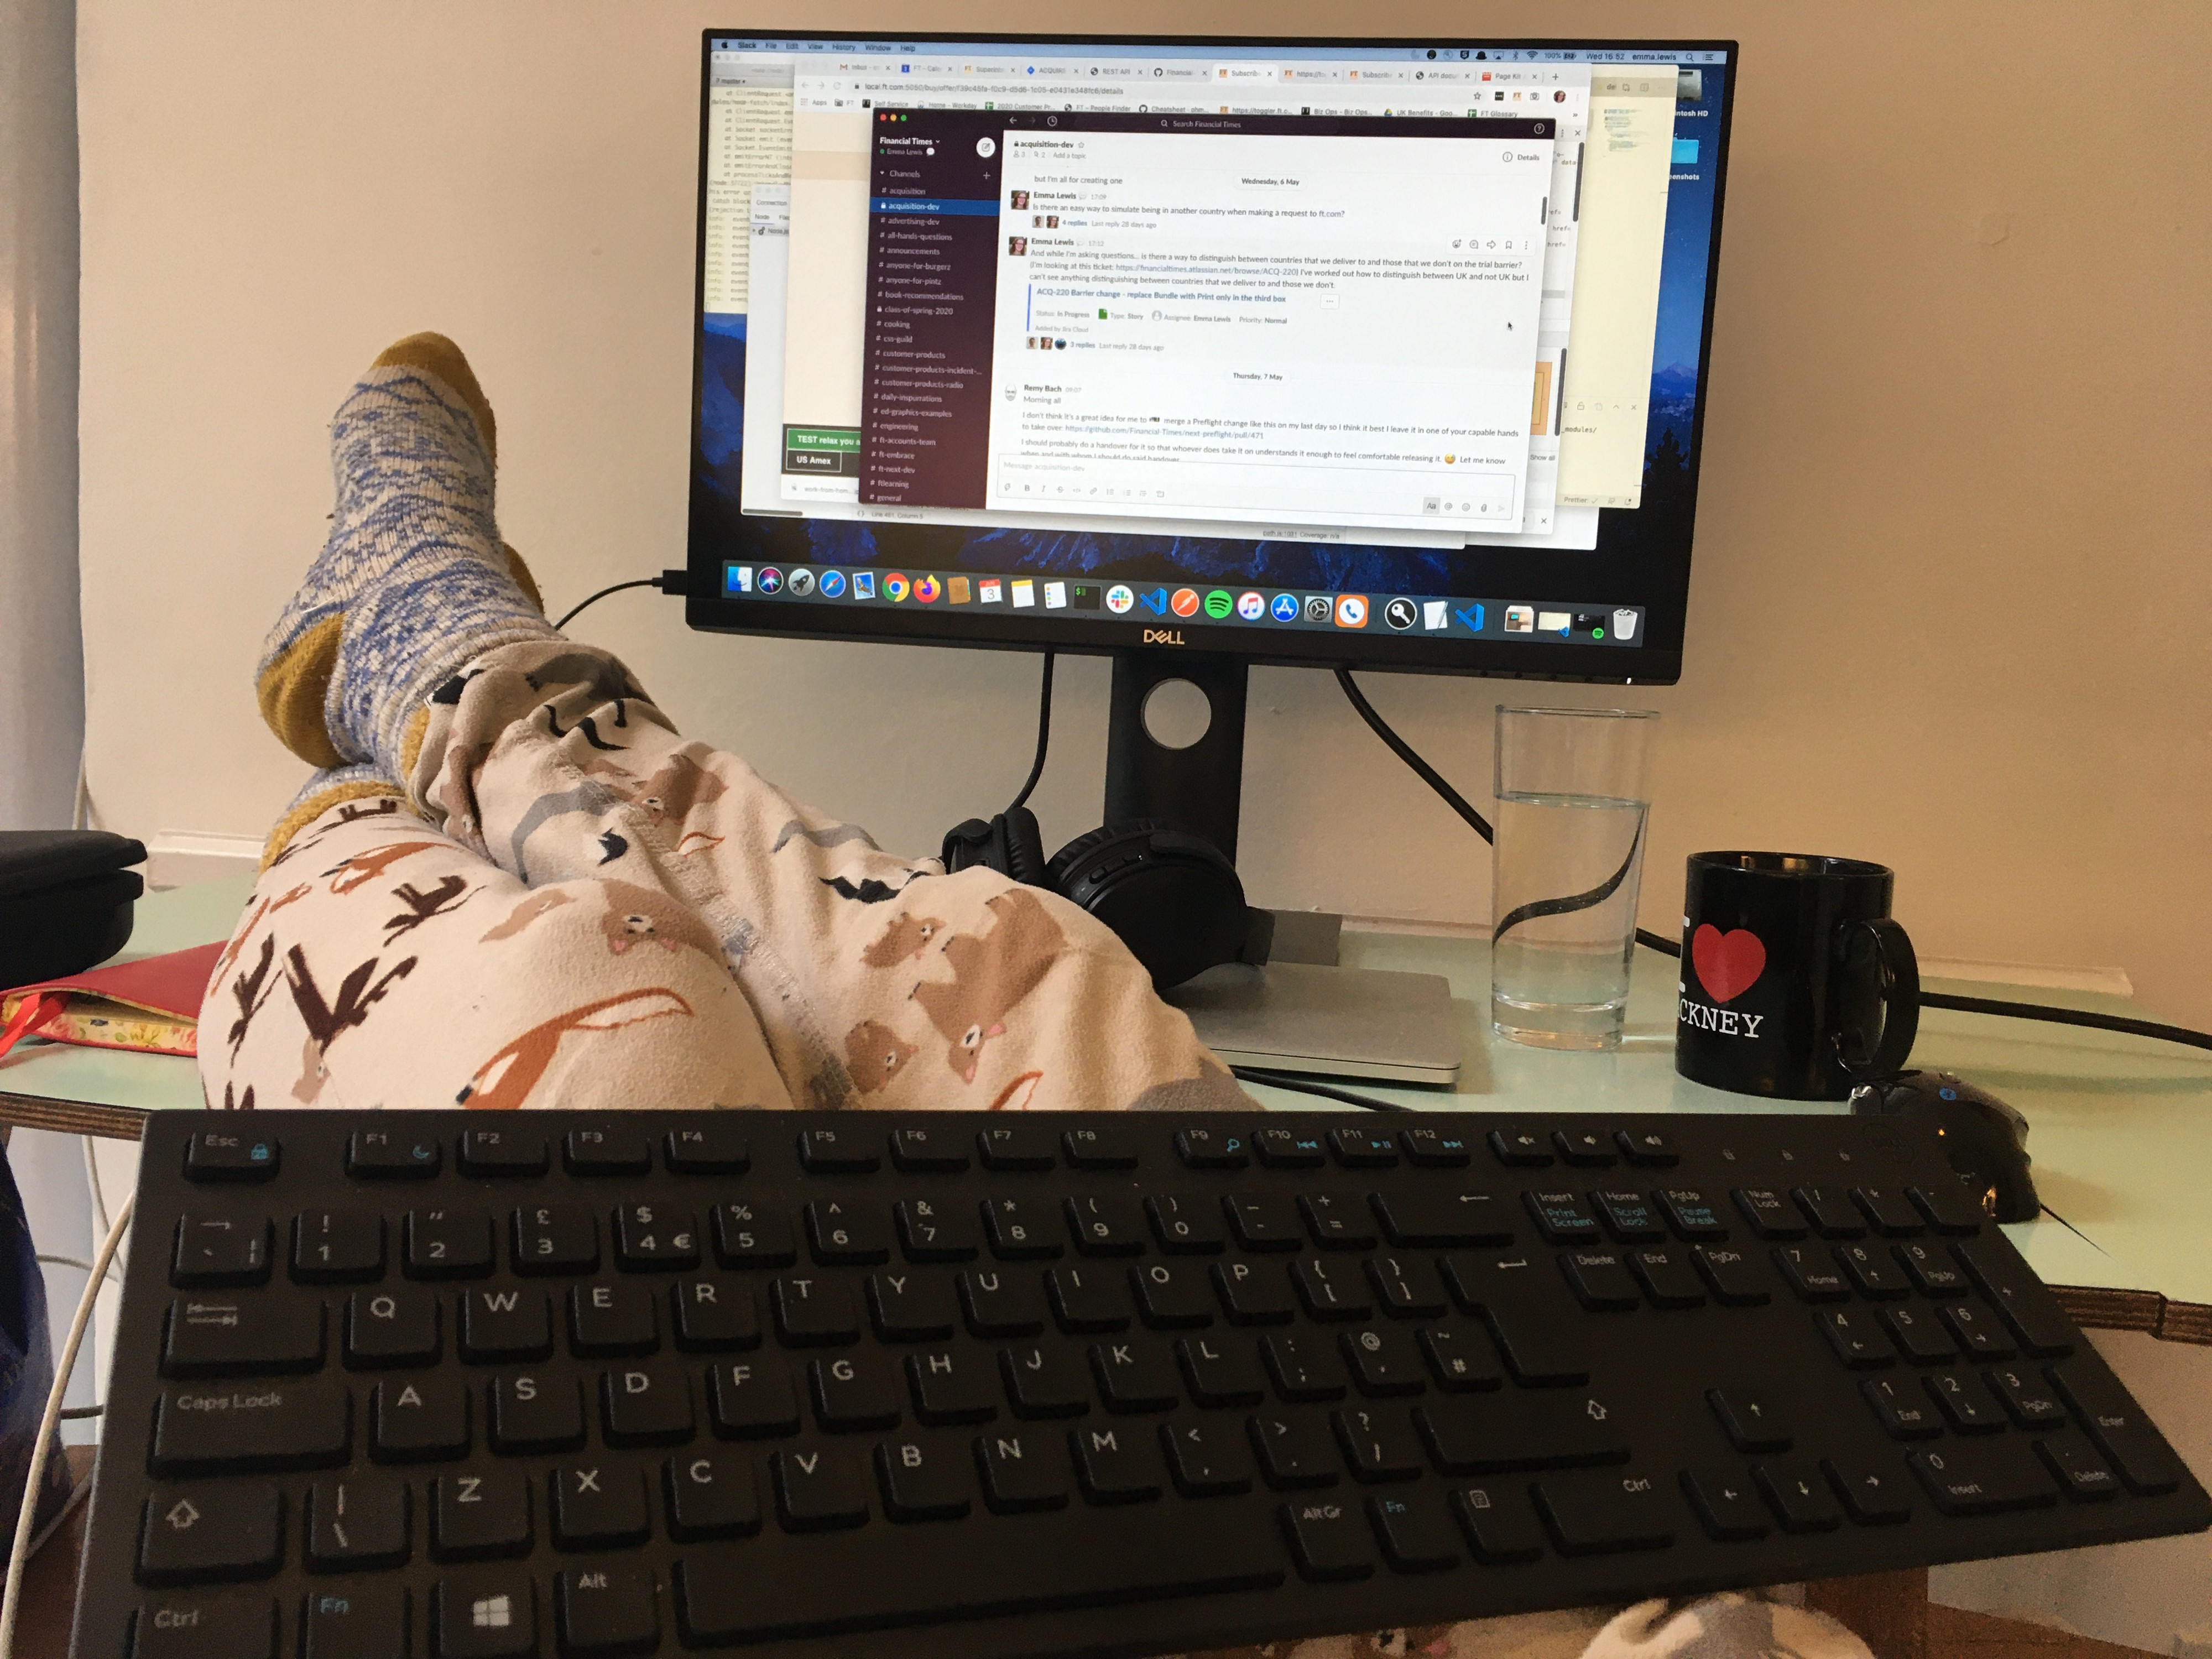 Feet up on a desk, wearing pyjama bottoms, keyboard on lap and Slack on screen.